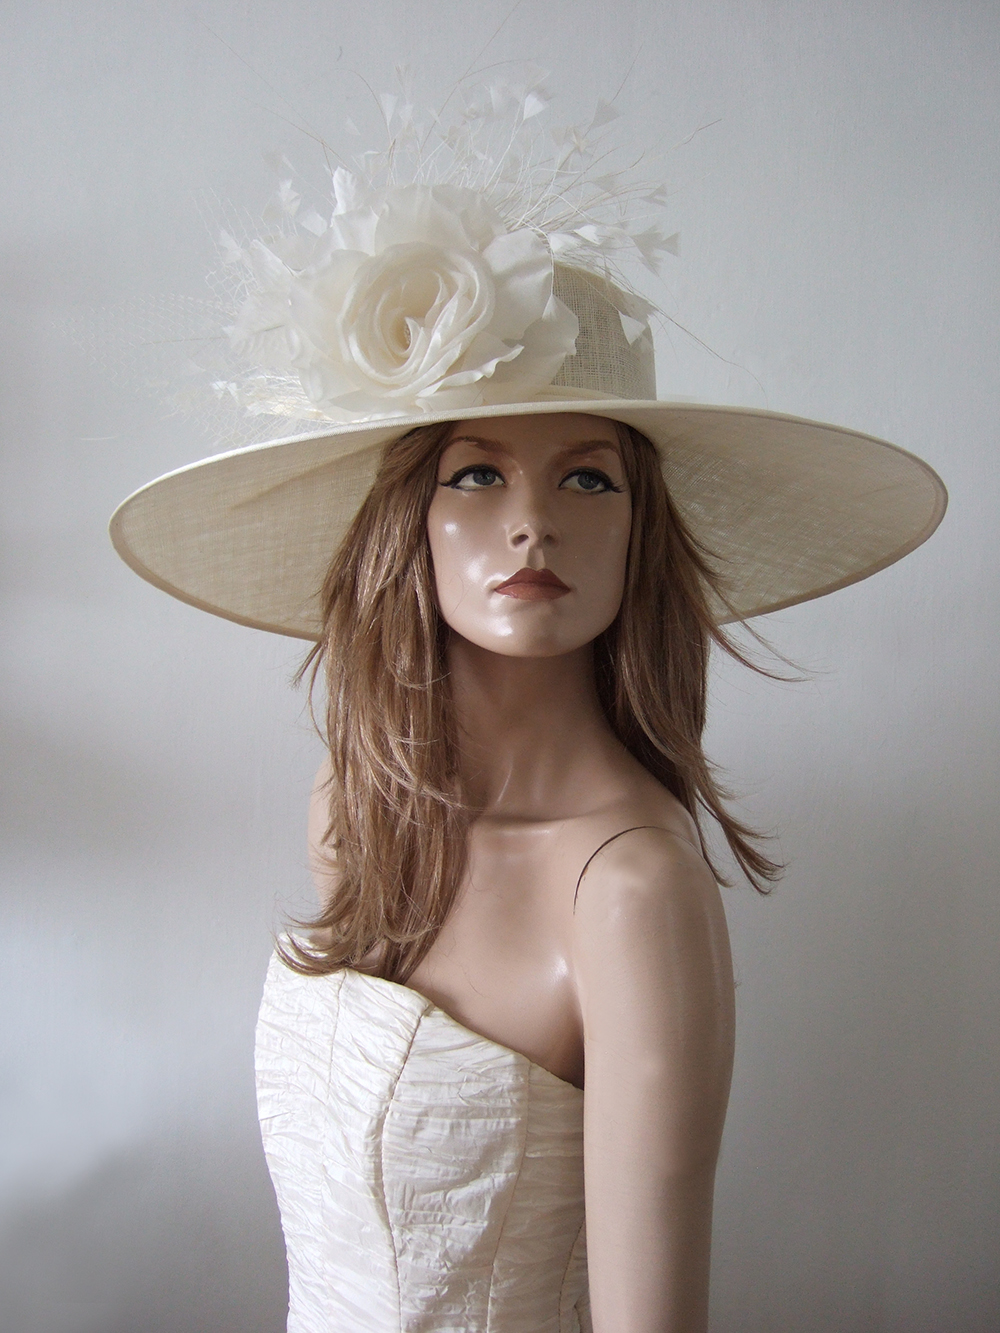 Cream Wedding Guest Hats 2020. Navy Hats for Royal Ascot 2020. Cream Ladies Formal Hats, Formal Hat Hire 2020. Hat Hire Berkshire. Wedding guest hats 2020. Hats for Hire 2020. Cream Ladies Wedding Hats. Cream Ivory Mother of the Bride Hat 2020. Royal Ascot Hat Rental 2020. Wedding Hats for Hire UK 2020. Hire Hats for Epsom Races 2020. Hats for the Races 2020.